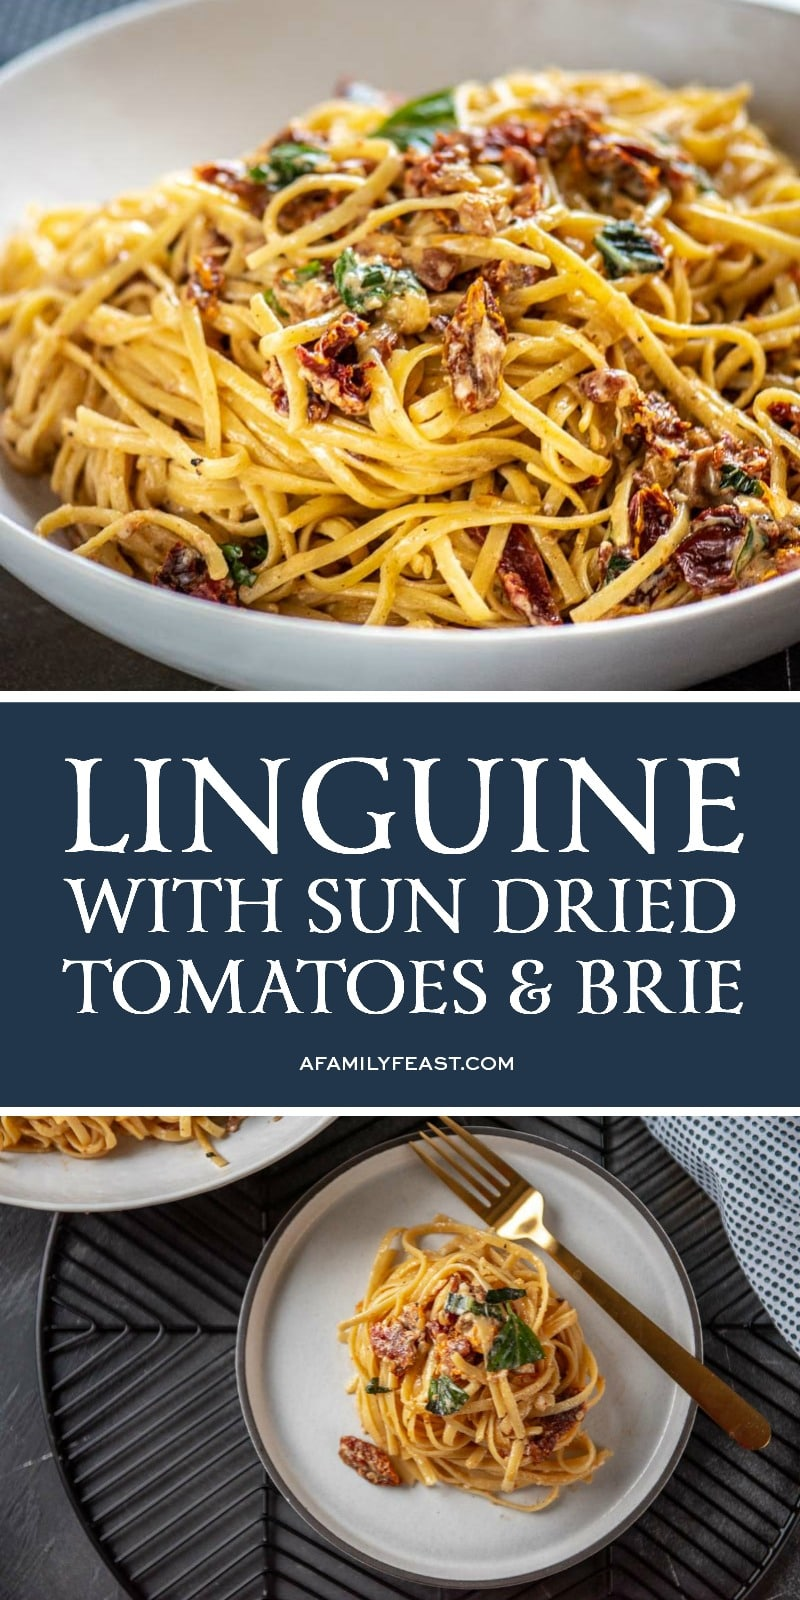 Linguini with Sun Dried Tomatoes and Brie